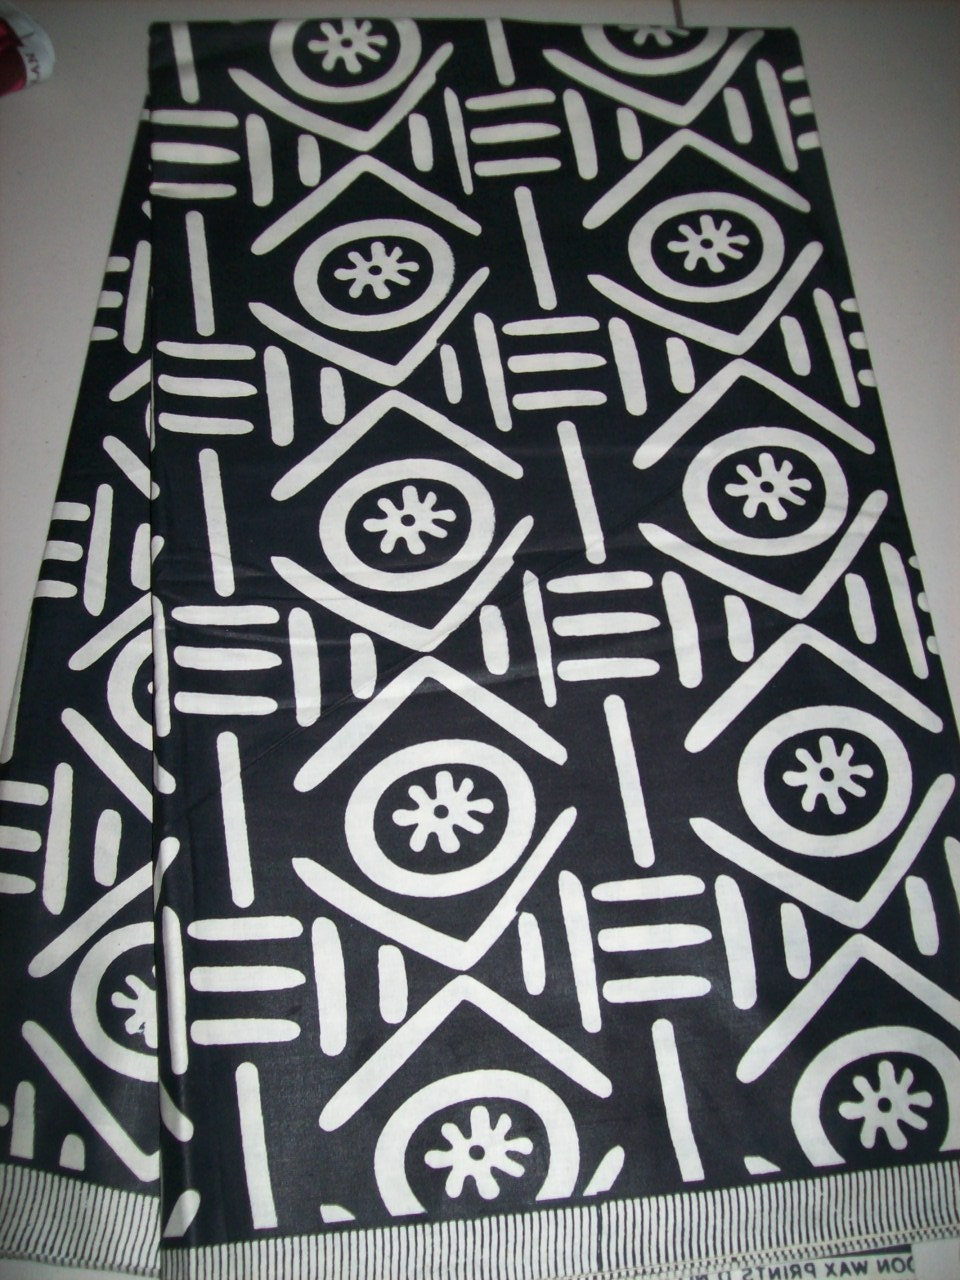 Tribal Ethnic Print Fabric from Mali Africa per yard/ African